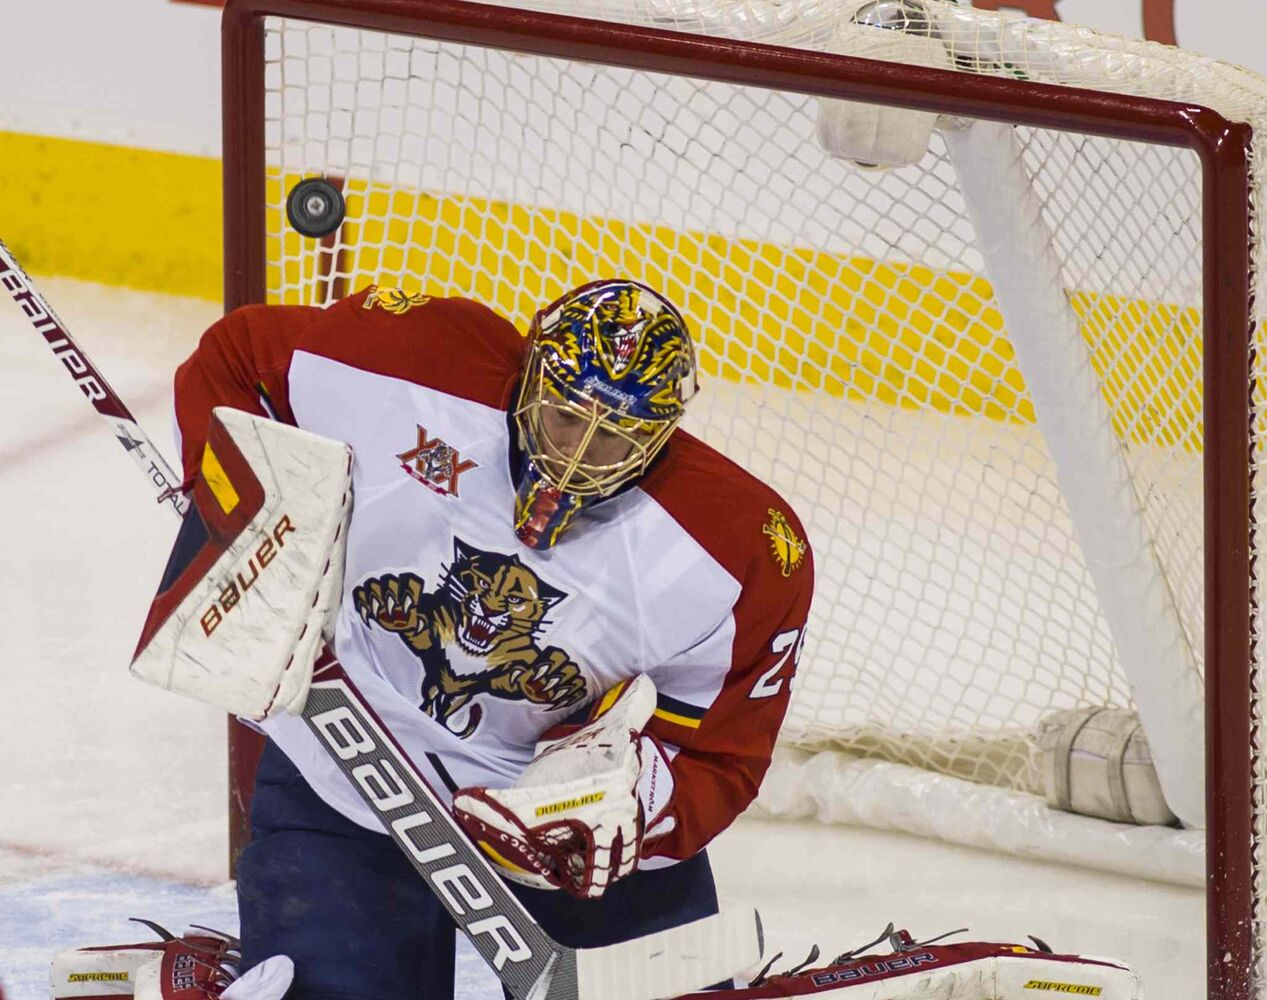 Florida Panthers goal tender Jacob Markstrom (#25) defects the puck during the first period action.